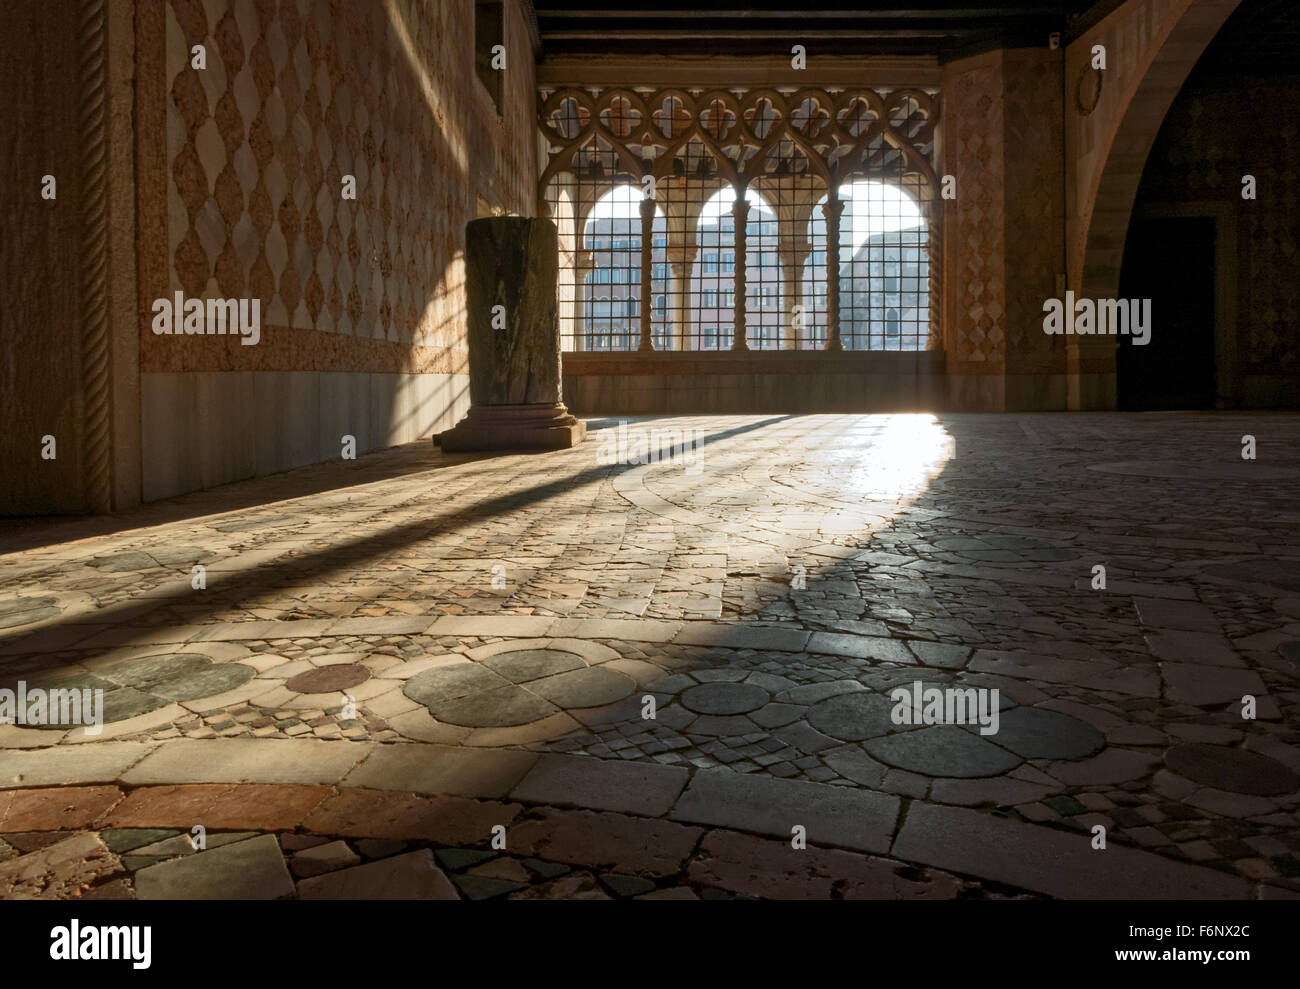 Interior of the Ca D'Oro gothic Palace in Venice Italy - Stock Image